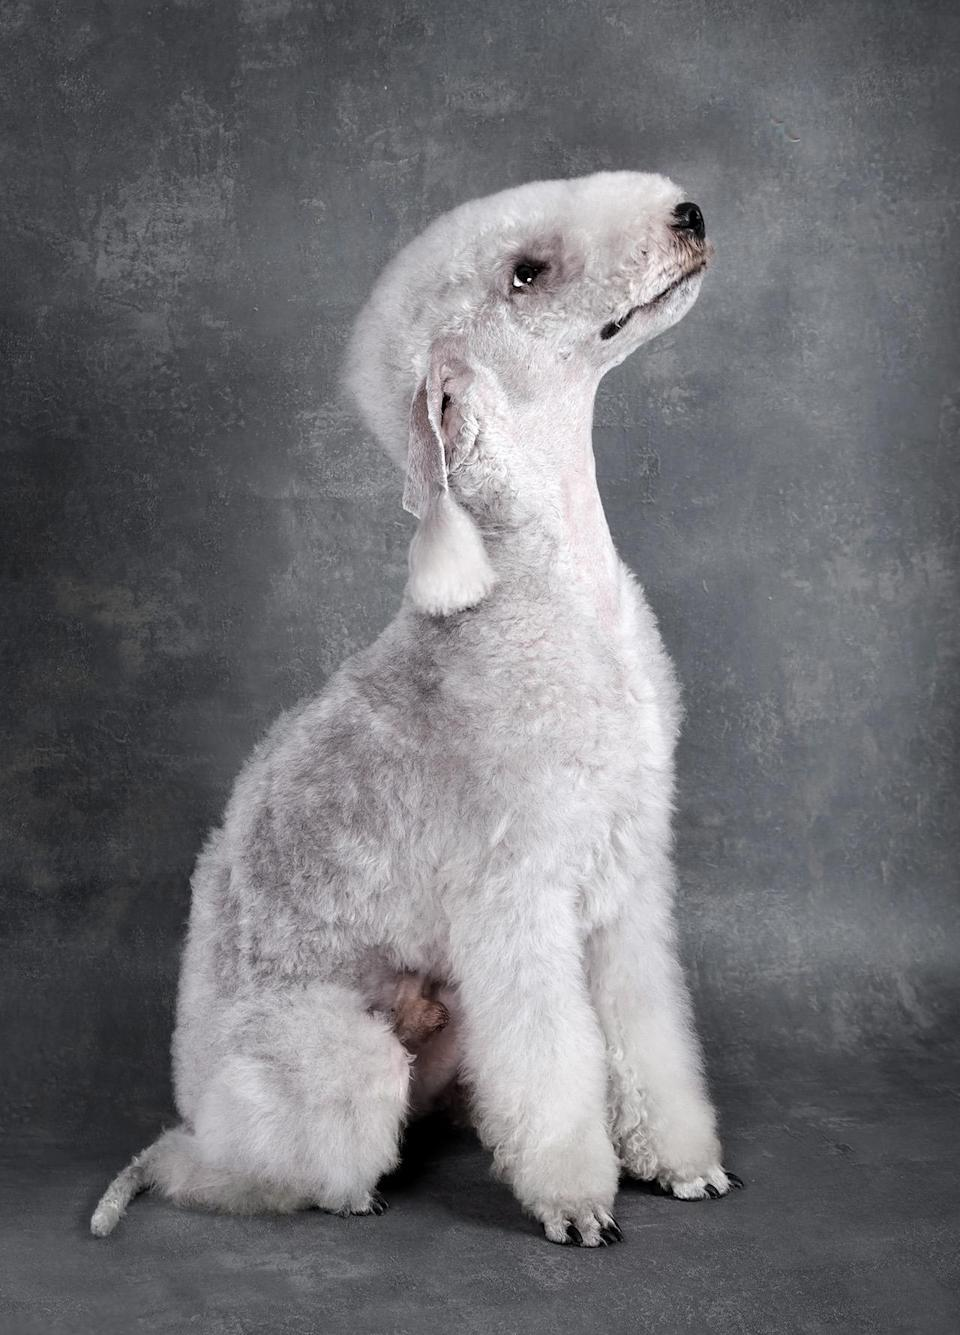 """<p>The <a href=""""https://www.dailypaws.com/dogs-puppies/dog-breeds/bedlington-terrier"""" rel=""""nofollow noopener"""" target=""""_blank"""" data-ylk=""""slk:Bedlington Terrier"""" class=""""link rapid-noclick-resp"""">Bedlington Terrier</a> was originally bred in England for hunting and is one of the larger terriers of the group. Hunting traits aside, this breed is often compared to a lamb for its striking resemblance to one.</p>"""